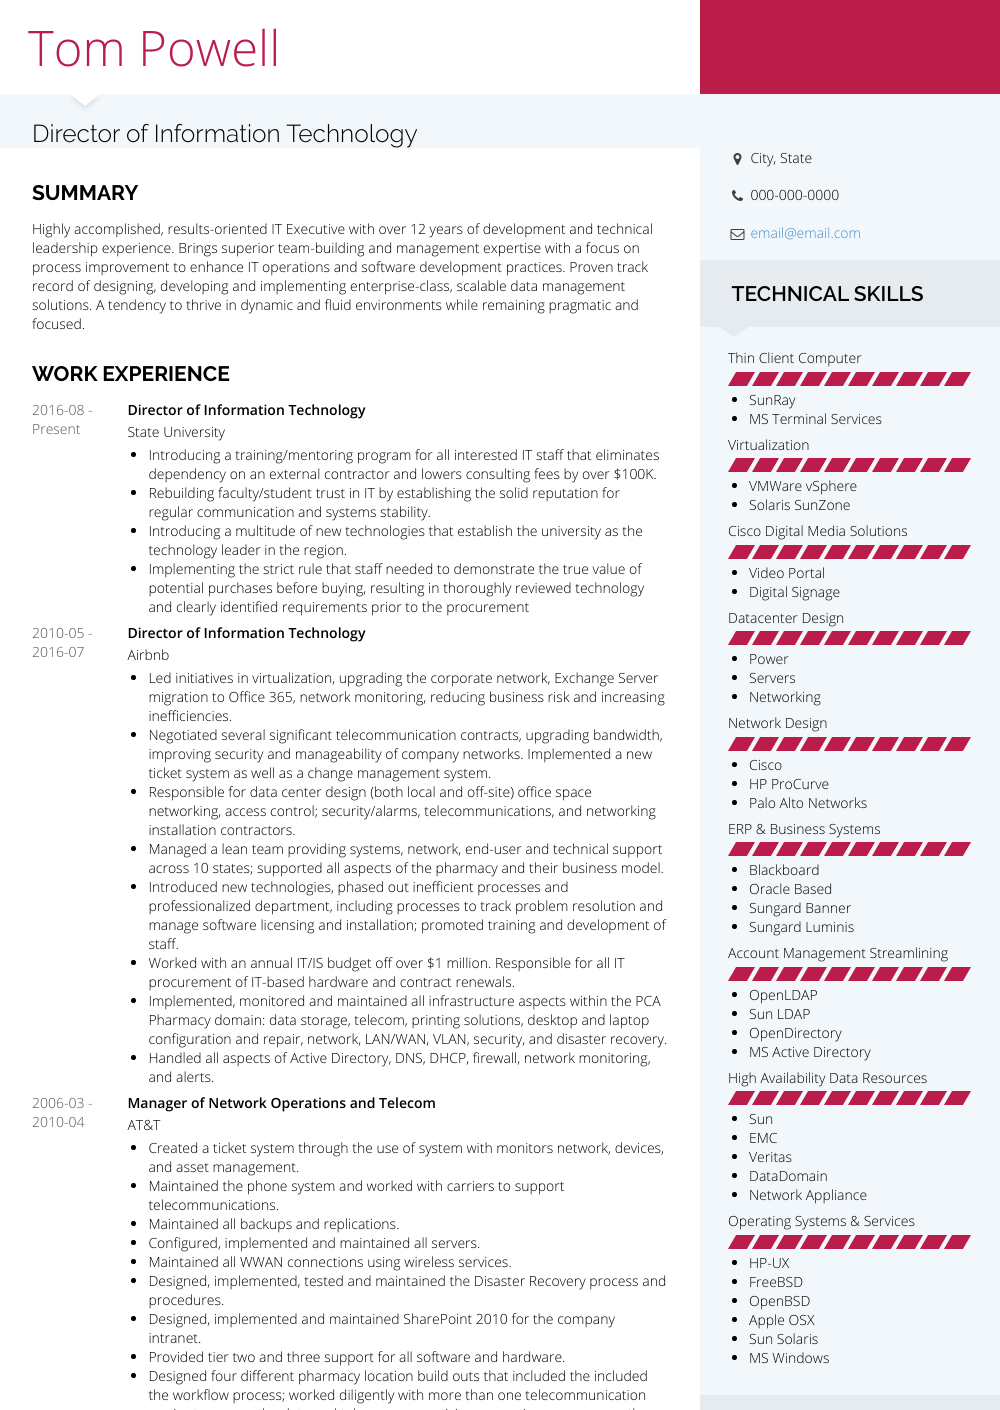 resume templates for information technology